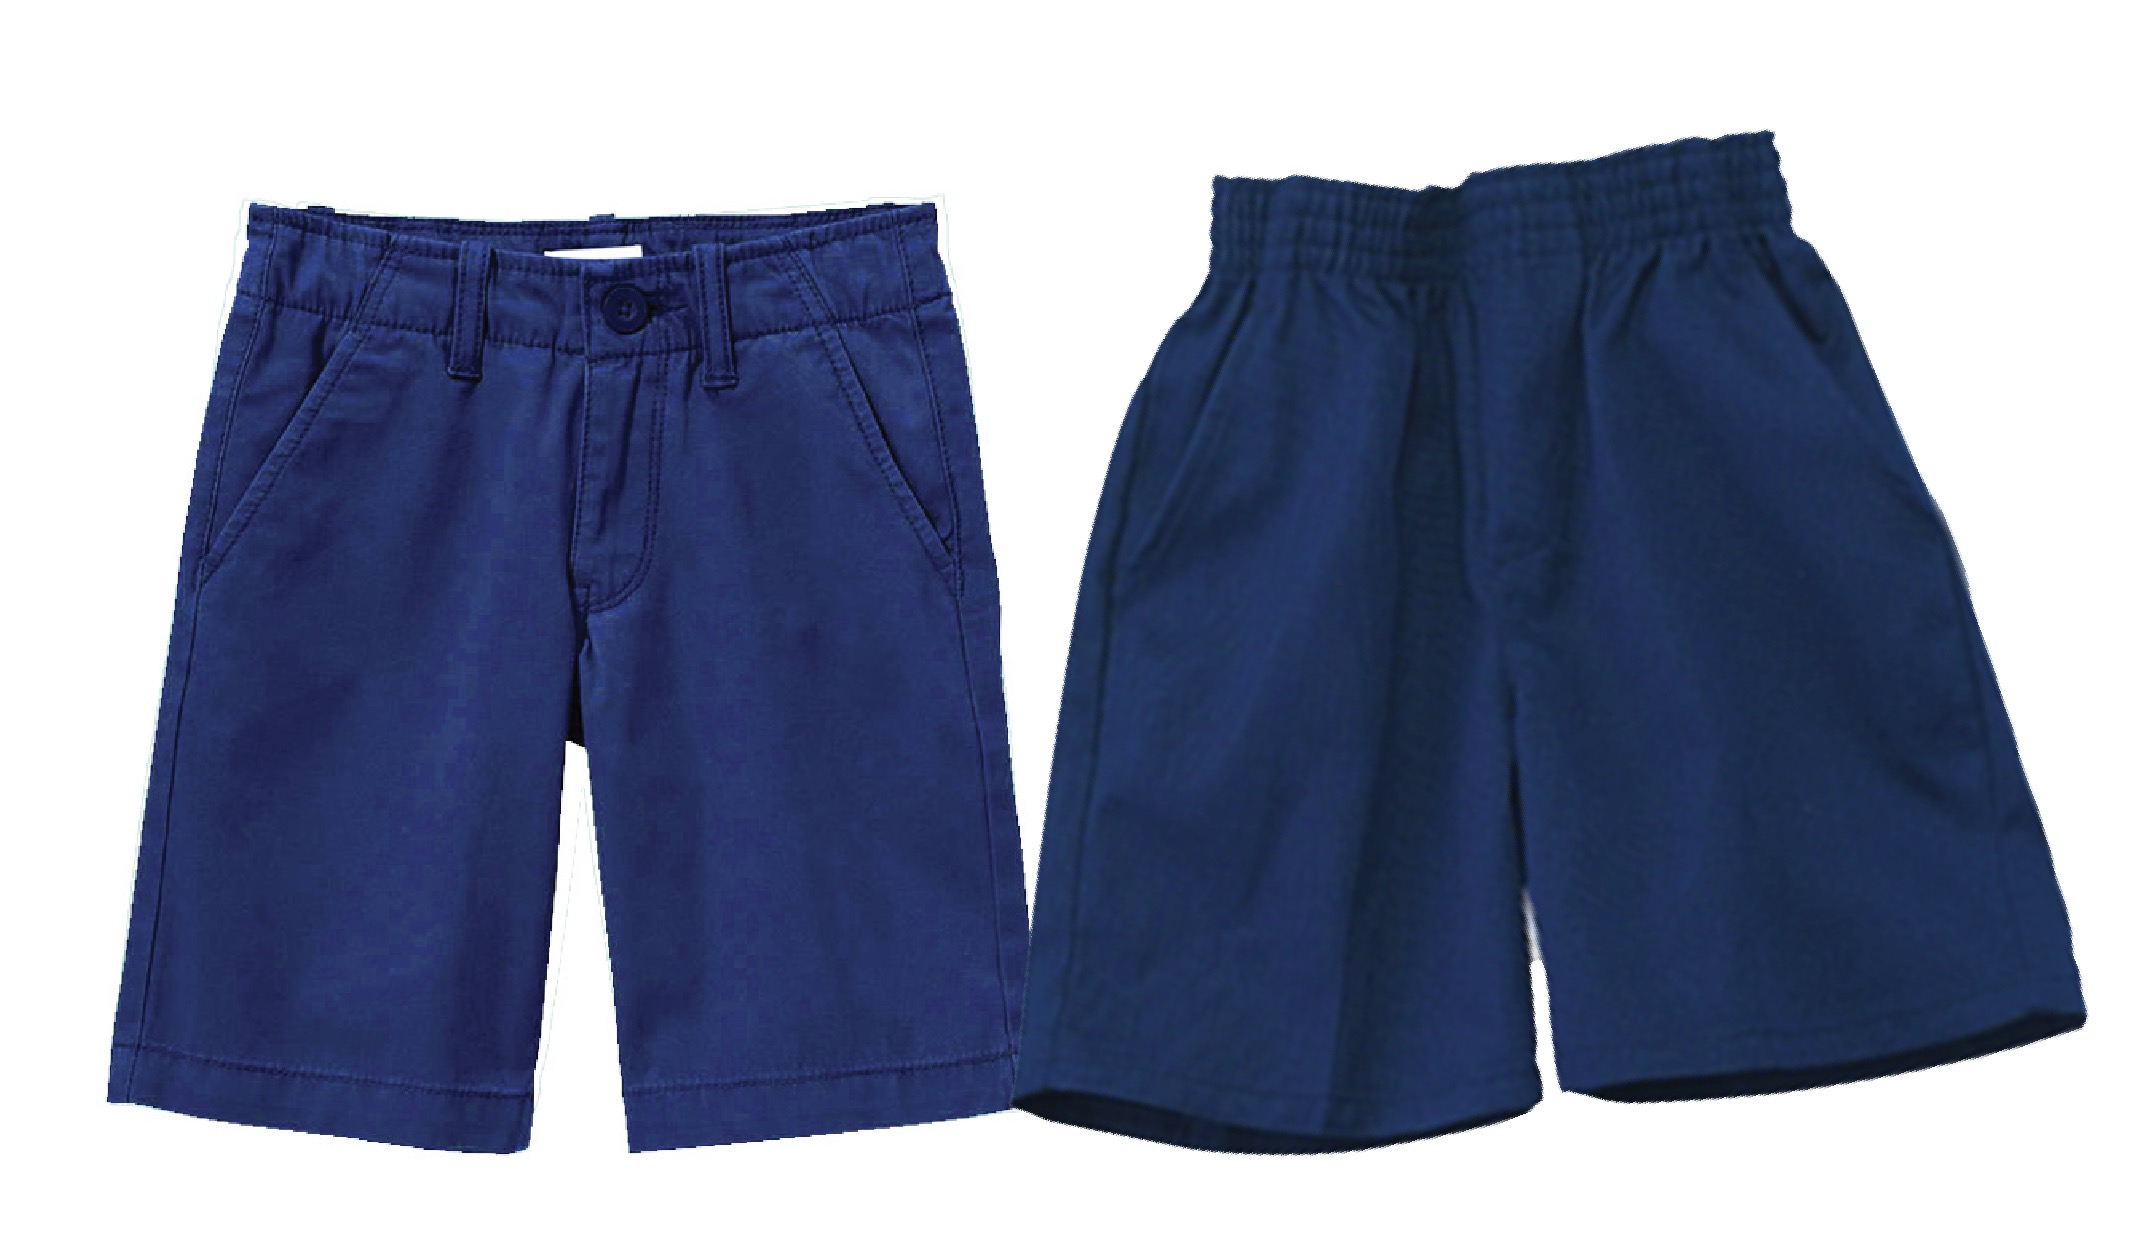 BOYS - PREMIUM - Boys Short Flat Front Pull Up